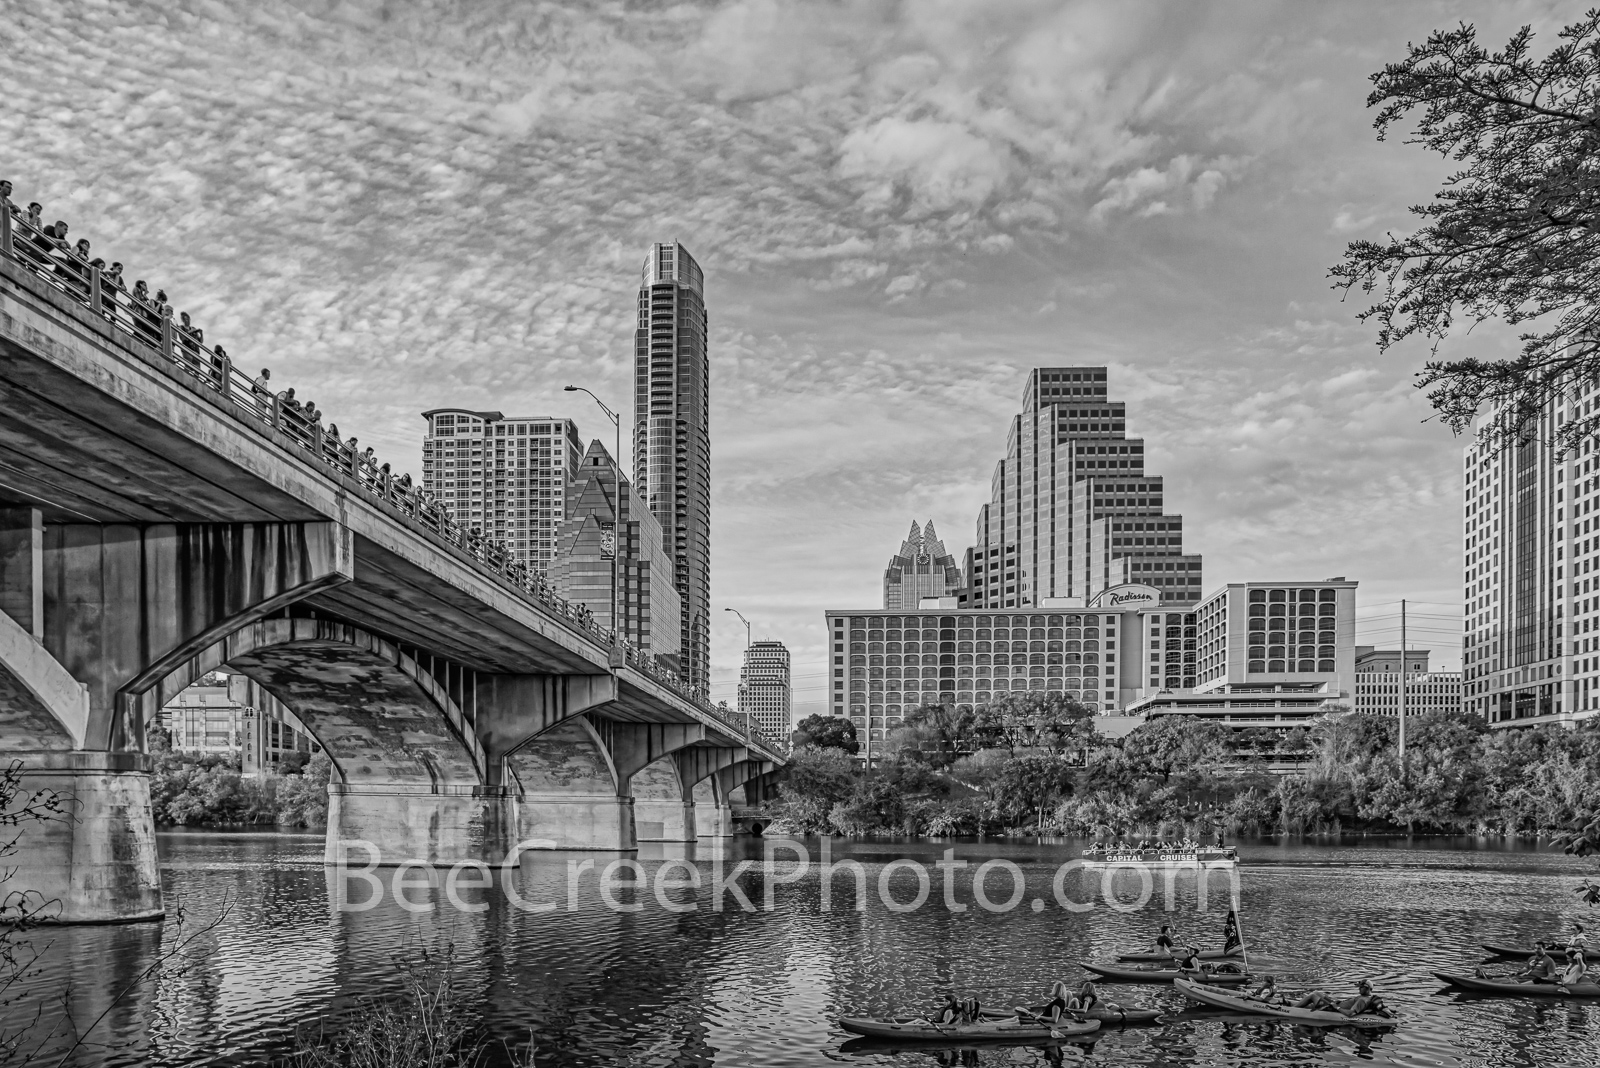 Waiting on the Bats BW - This is the nightly bat watch that goes on in Austin Texas with people along the congress bridge and...